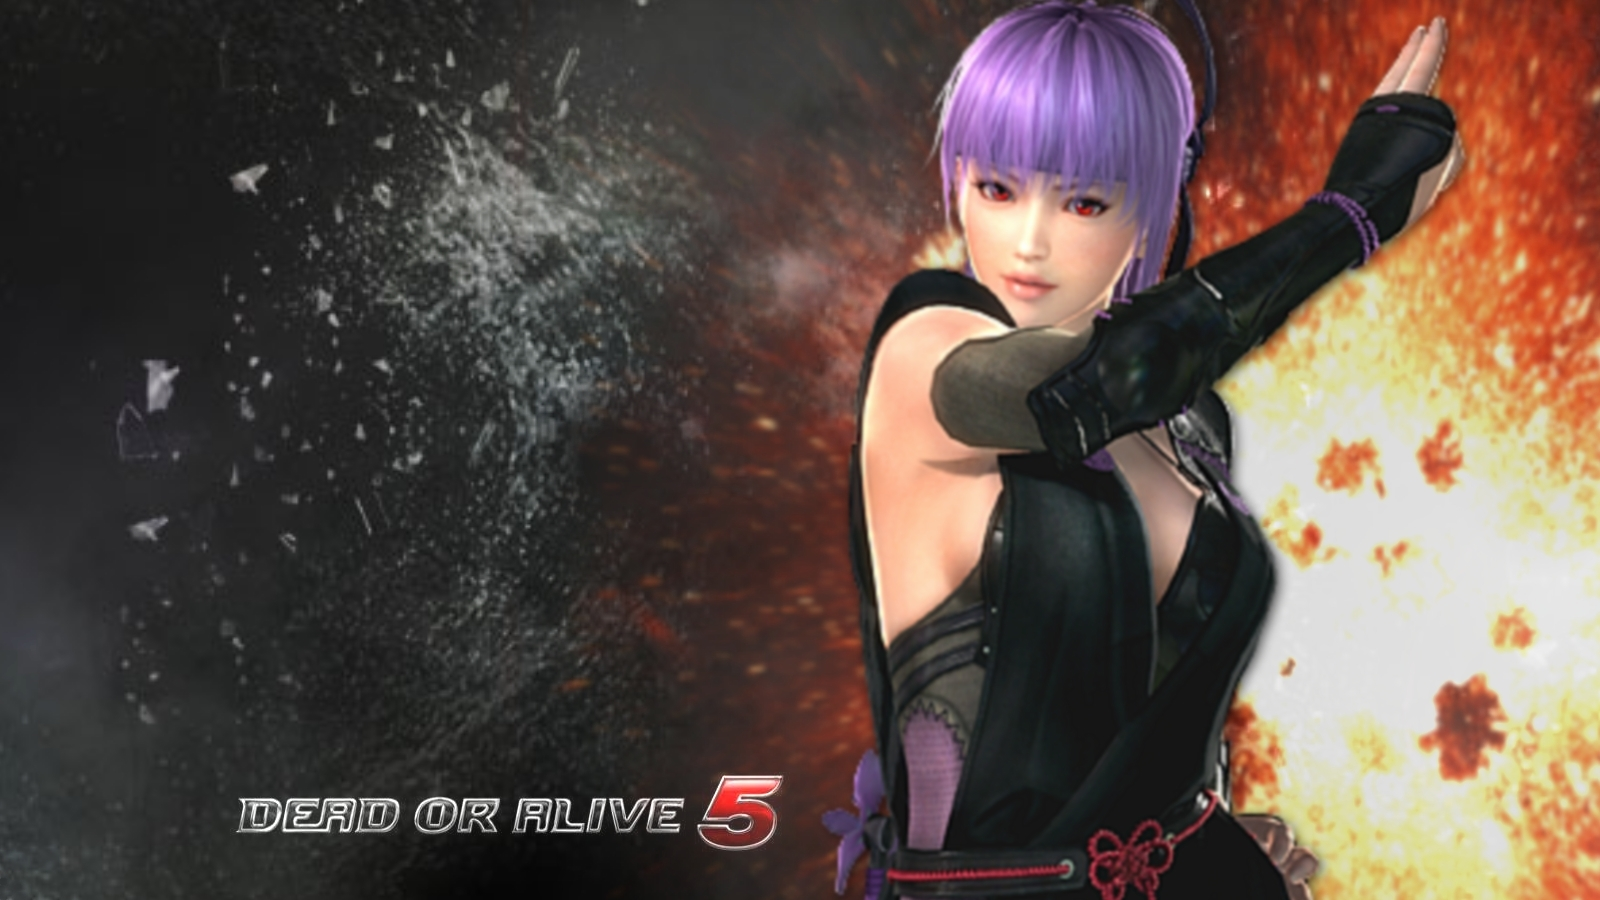 Ayane Dead or Alive 5 Wallpaper 1600x900